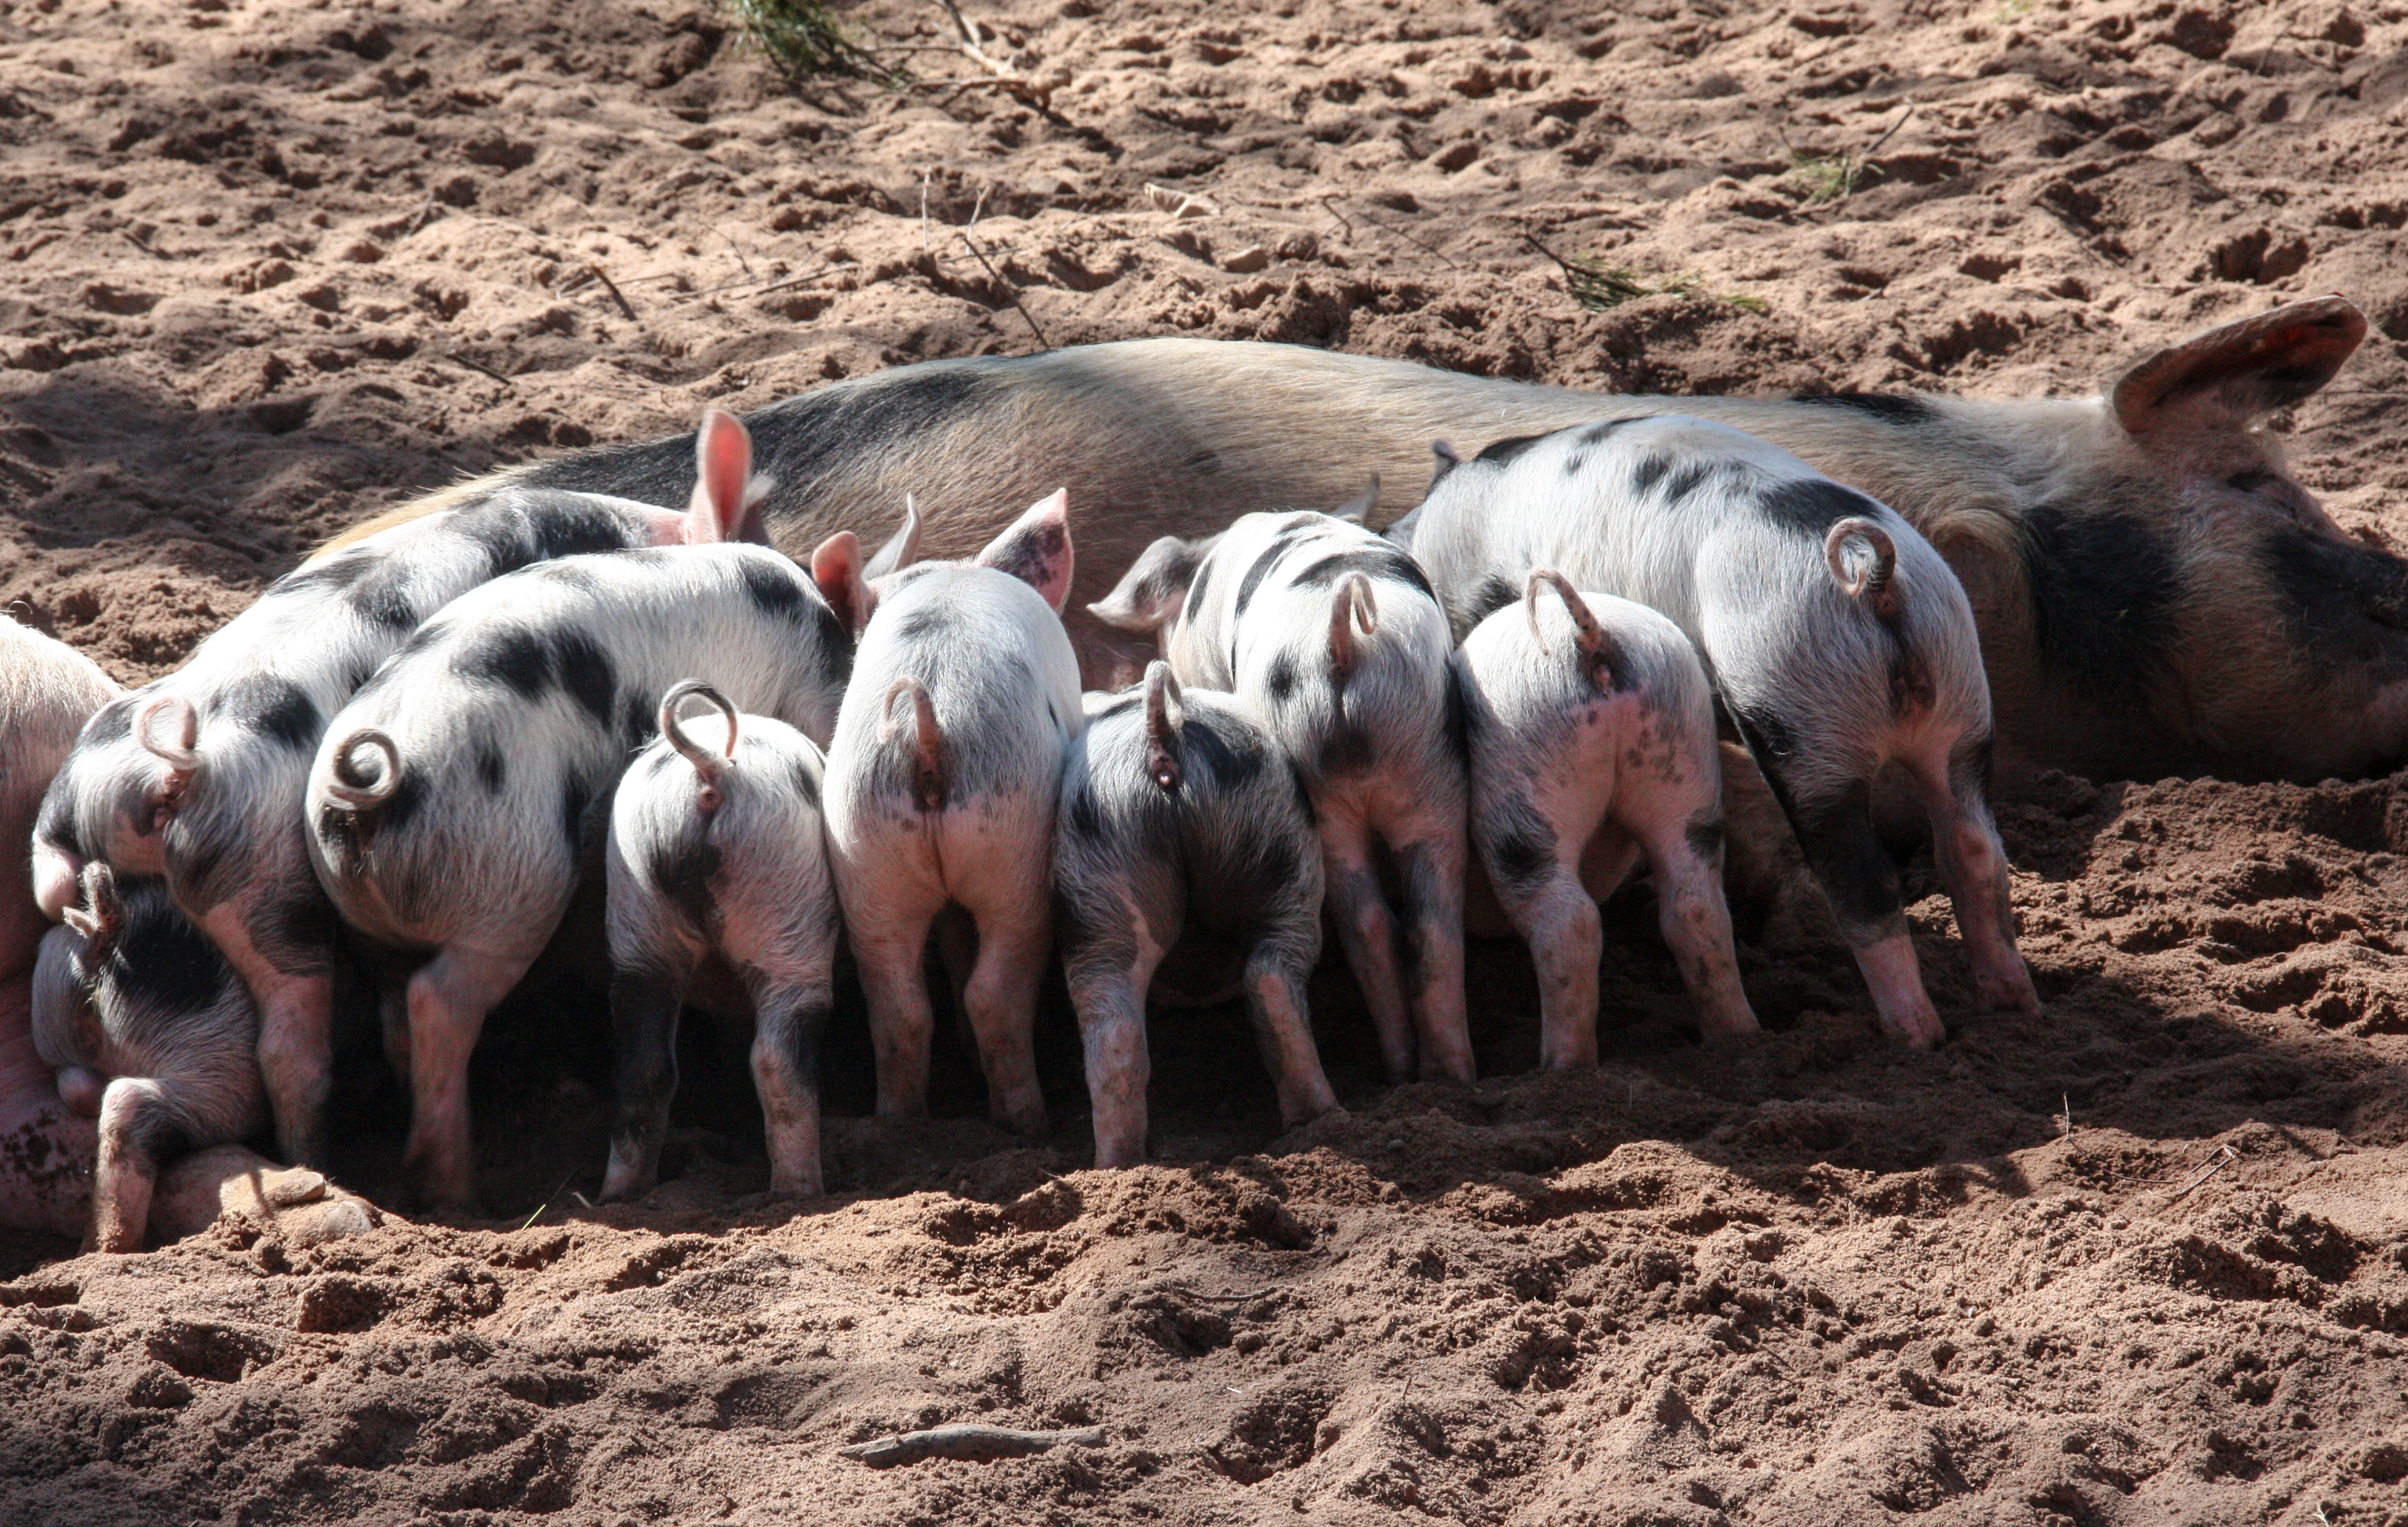 High Definition Animal Wallpapers Black And White Pig Feeding Her Piglets 183 Free Stock Photo